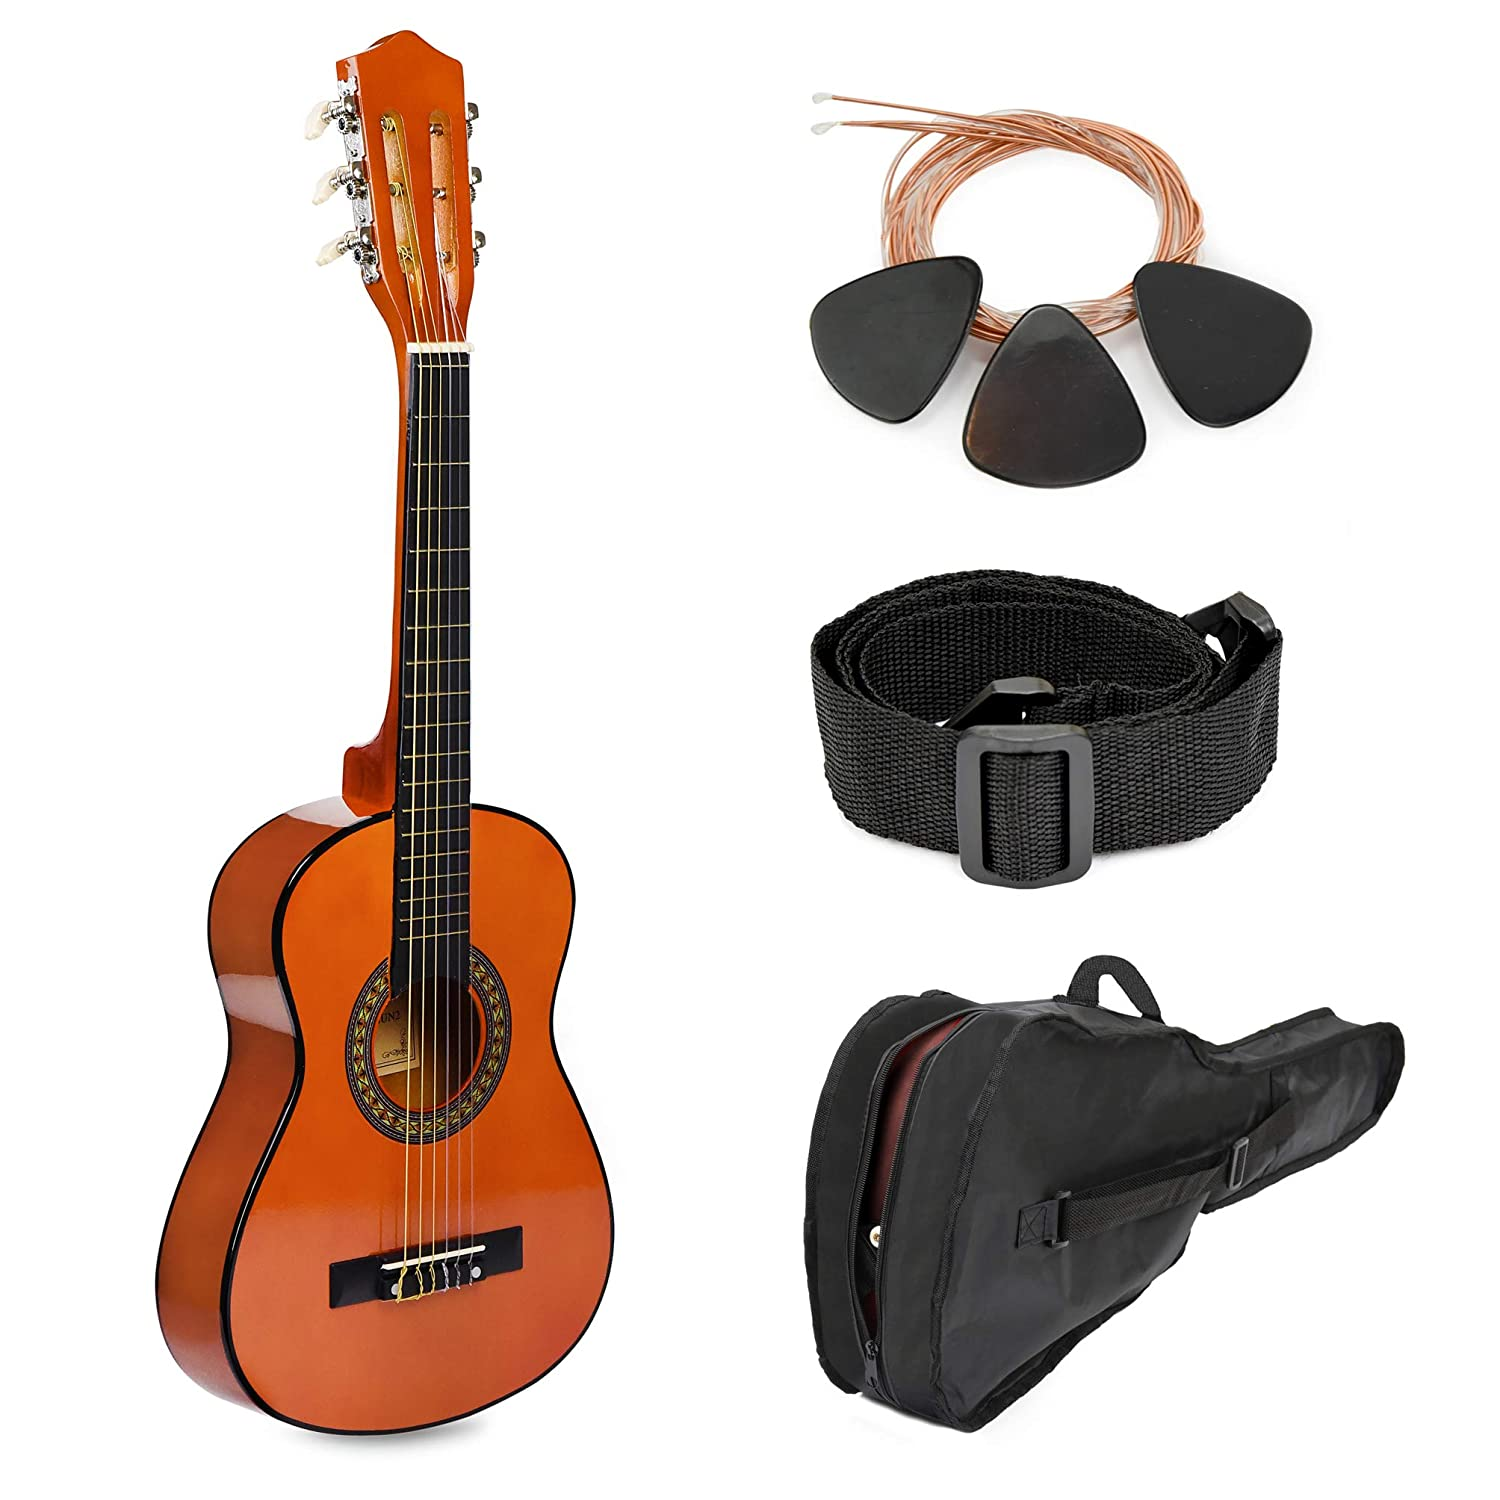 "30"" Sunset Wood Guitar with Case and Accessories for Kids/Girls/Boys/Beginners 71h4FjvOaxL"